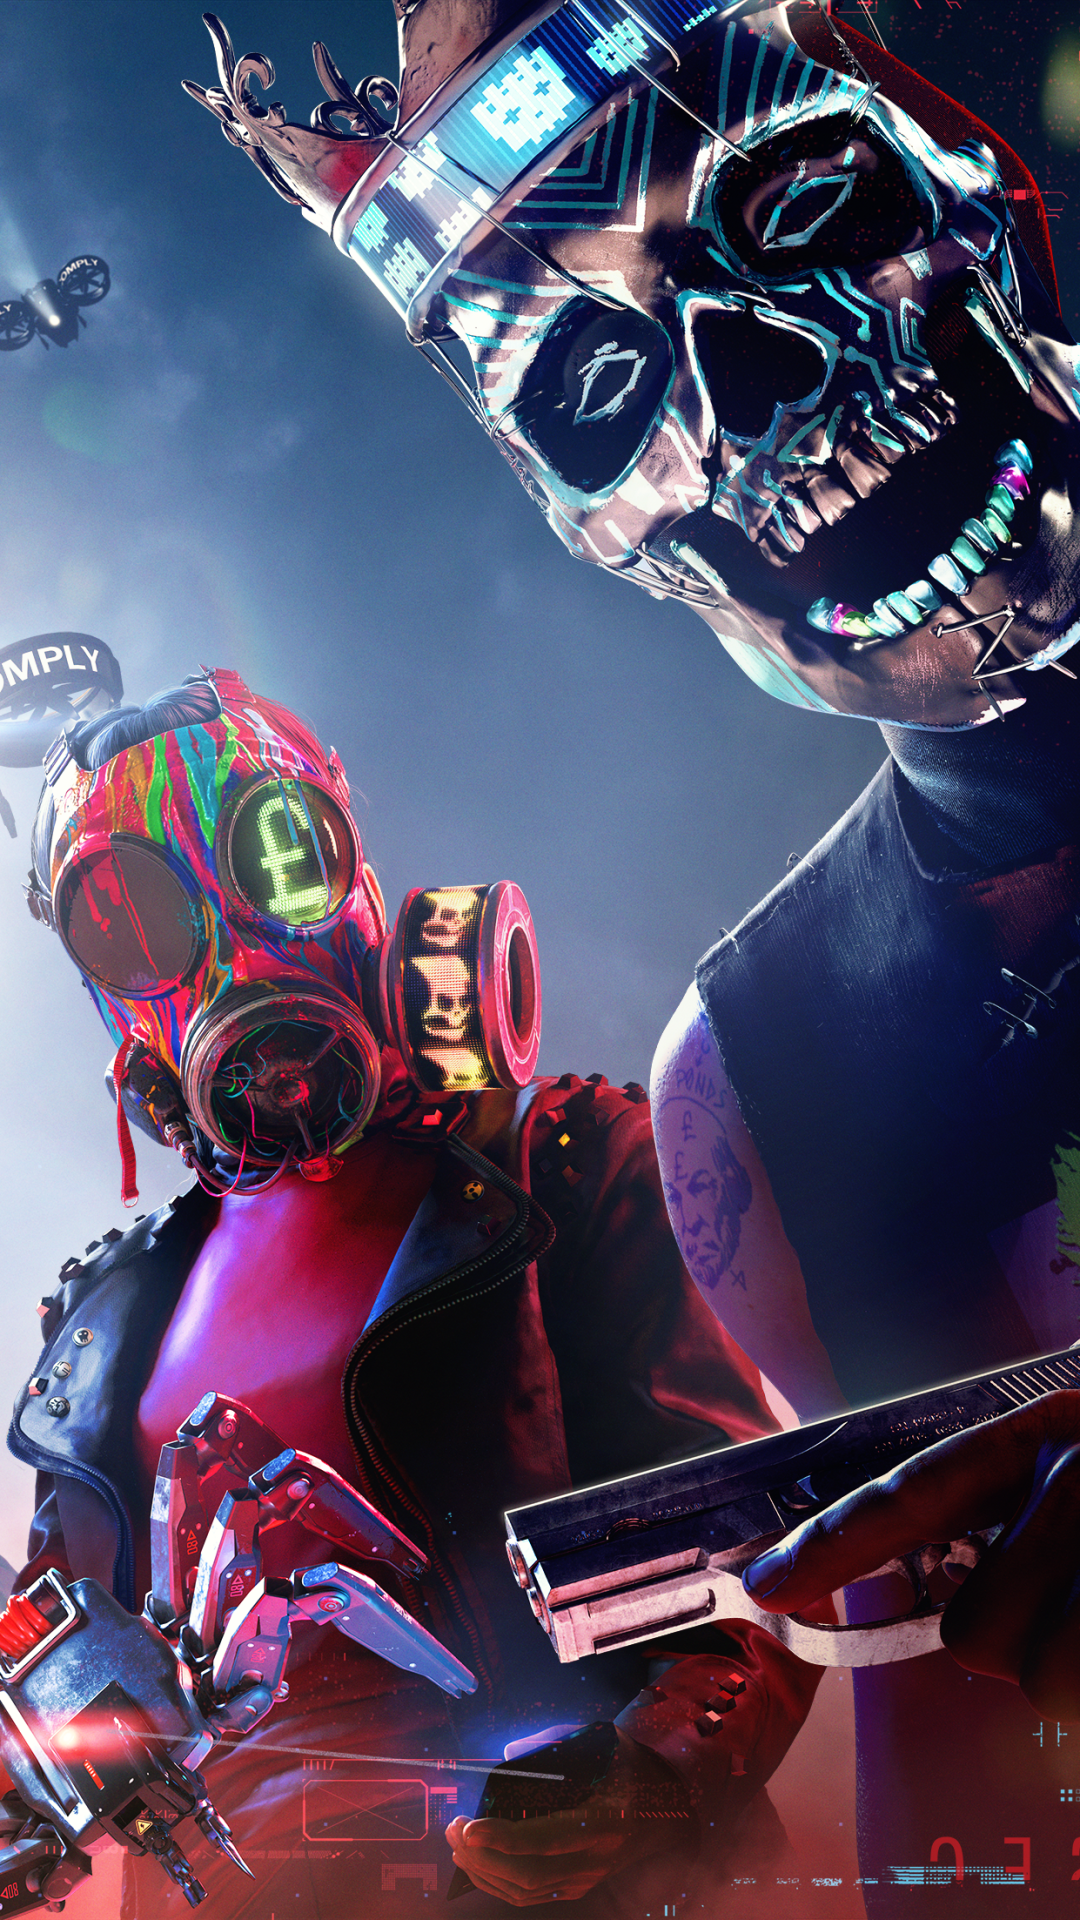 Watch Dogs Legion Wallpapers Top Free Watch Dogs Legion